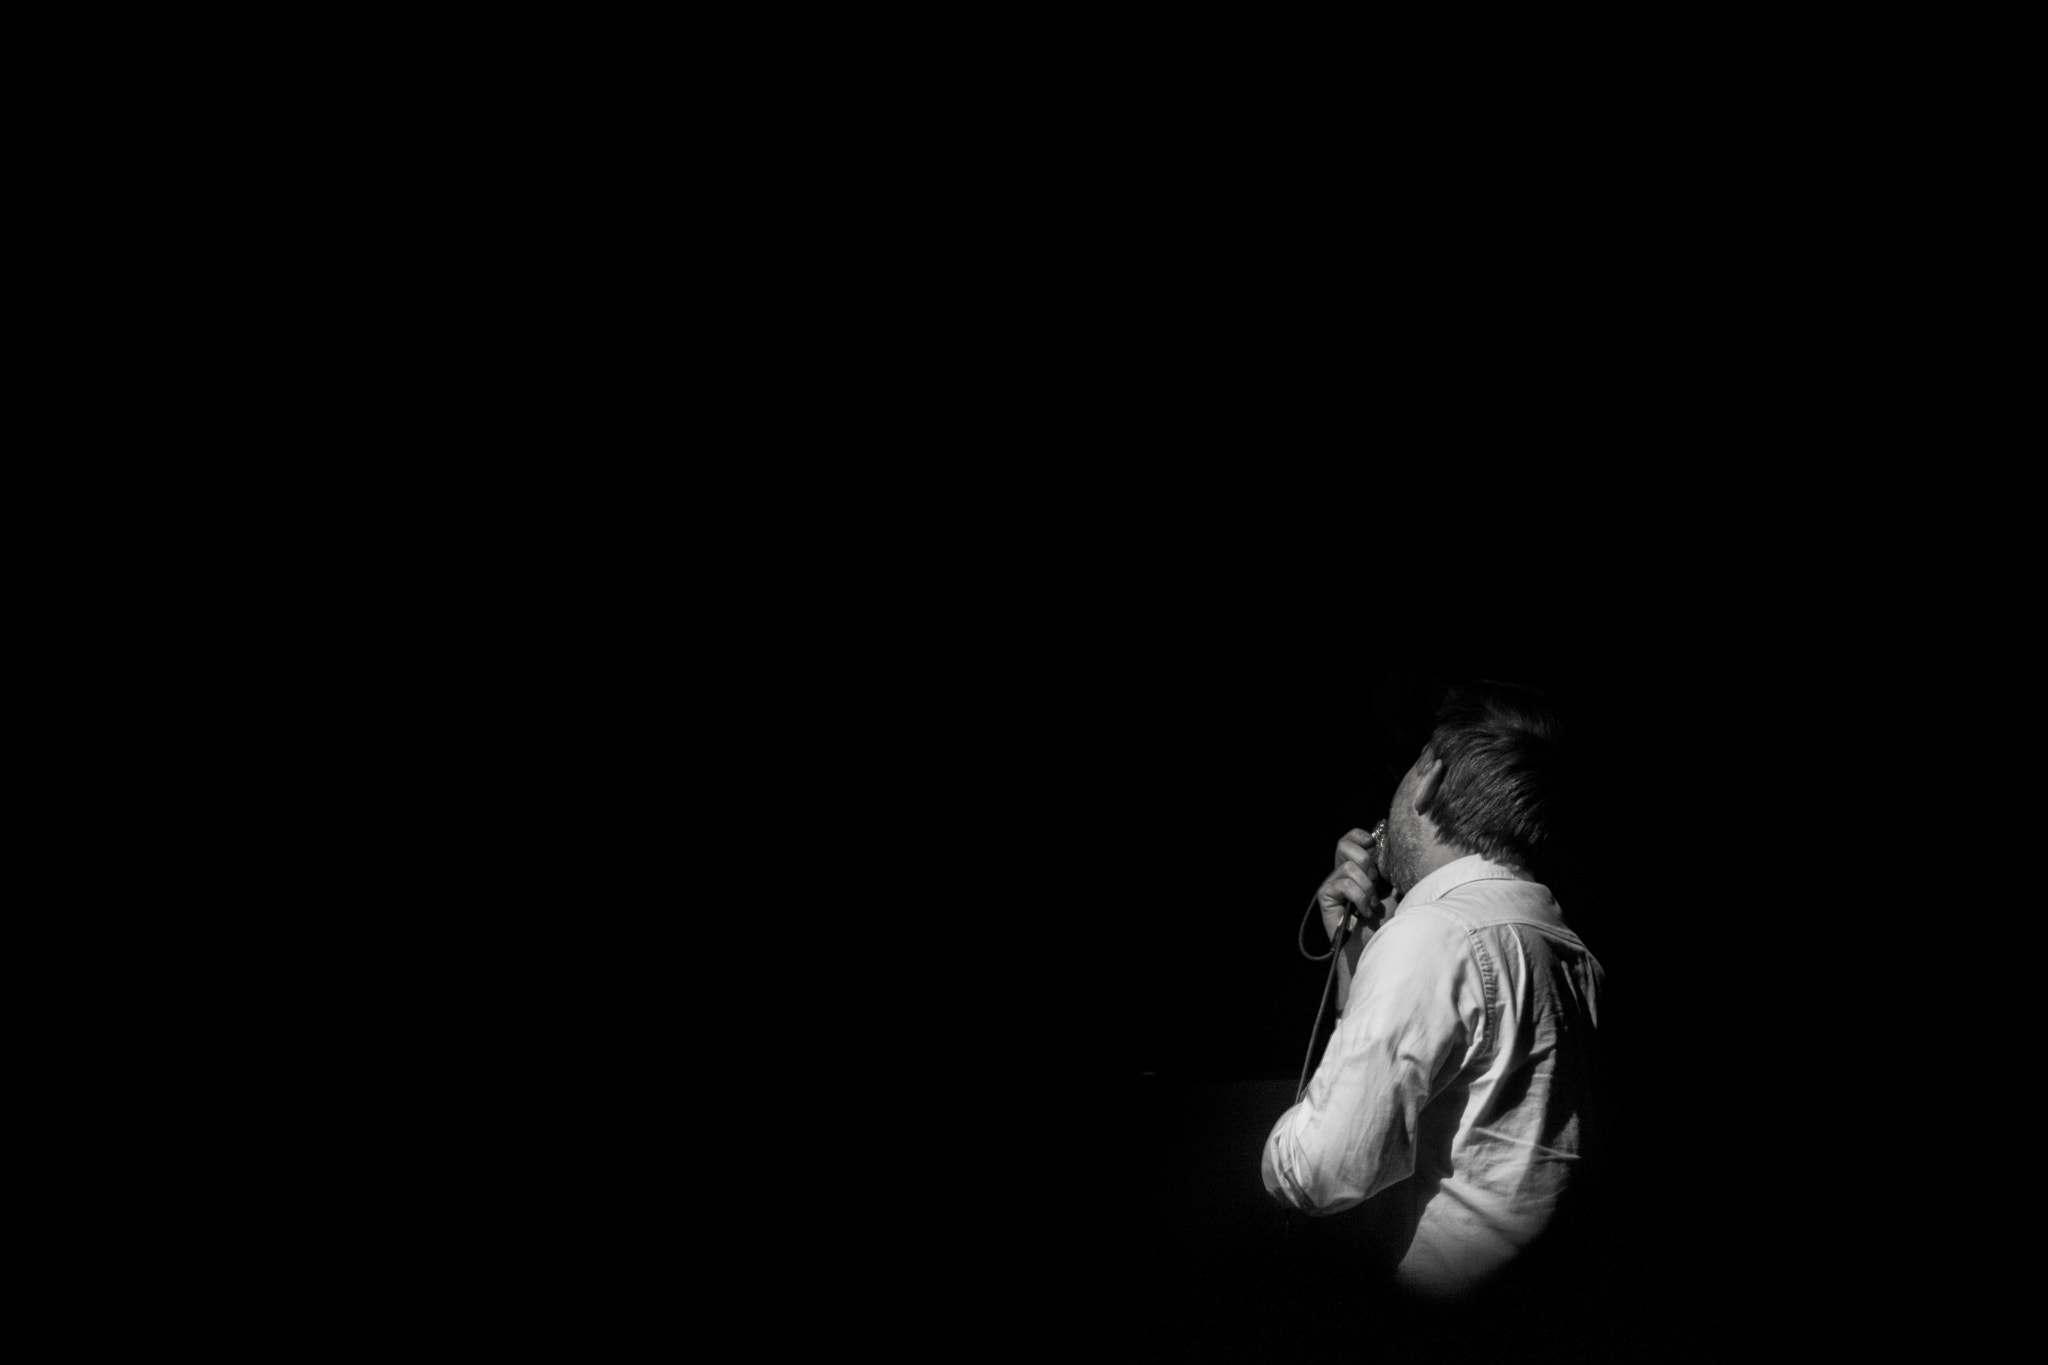 Photograph James Murphy - LCD by Zack McTee on 500px